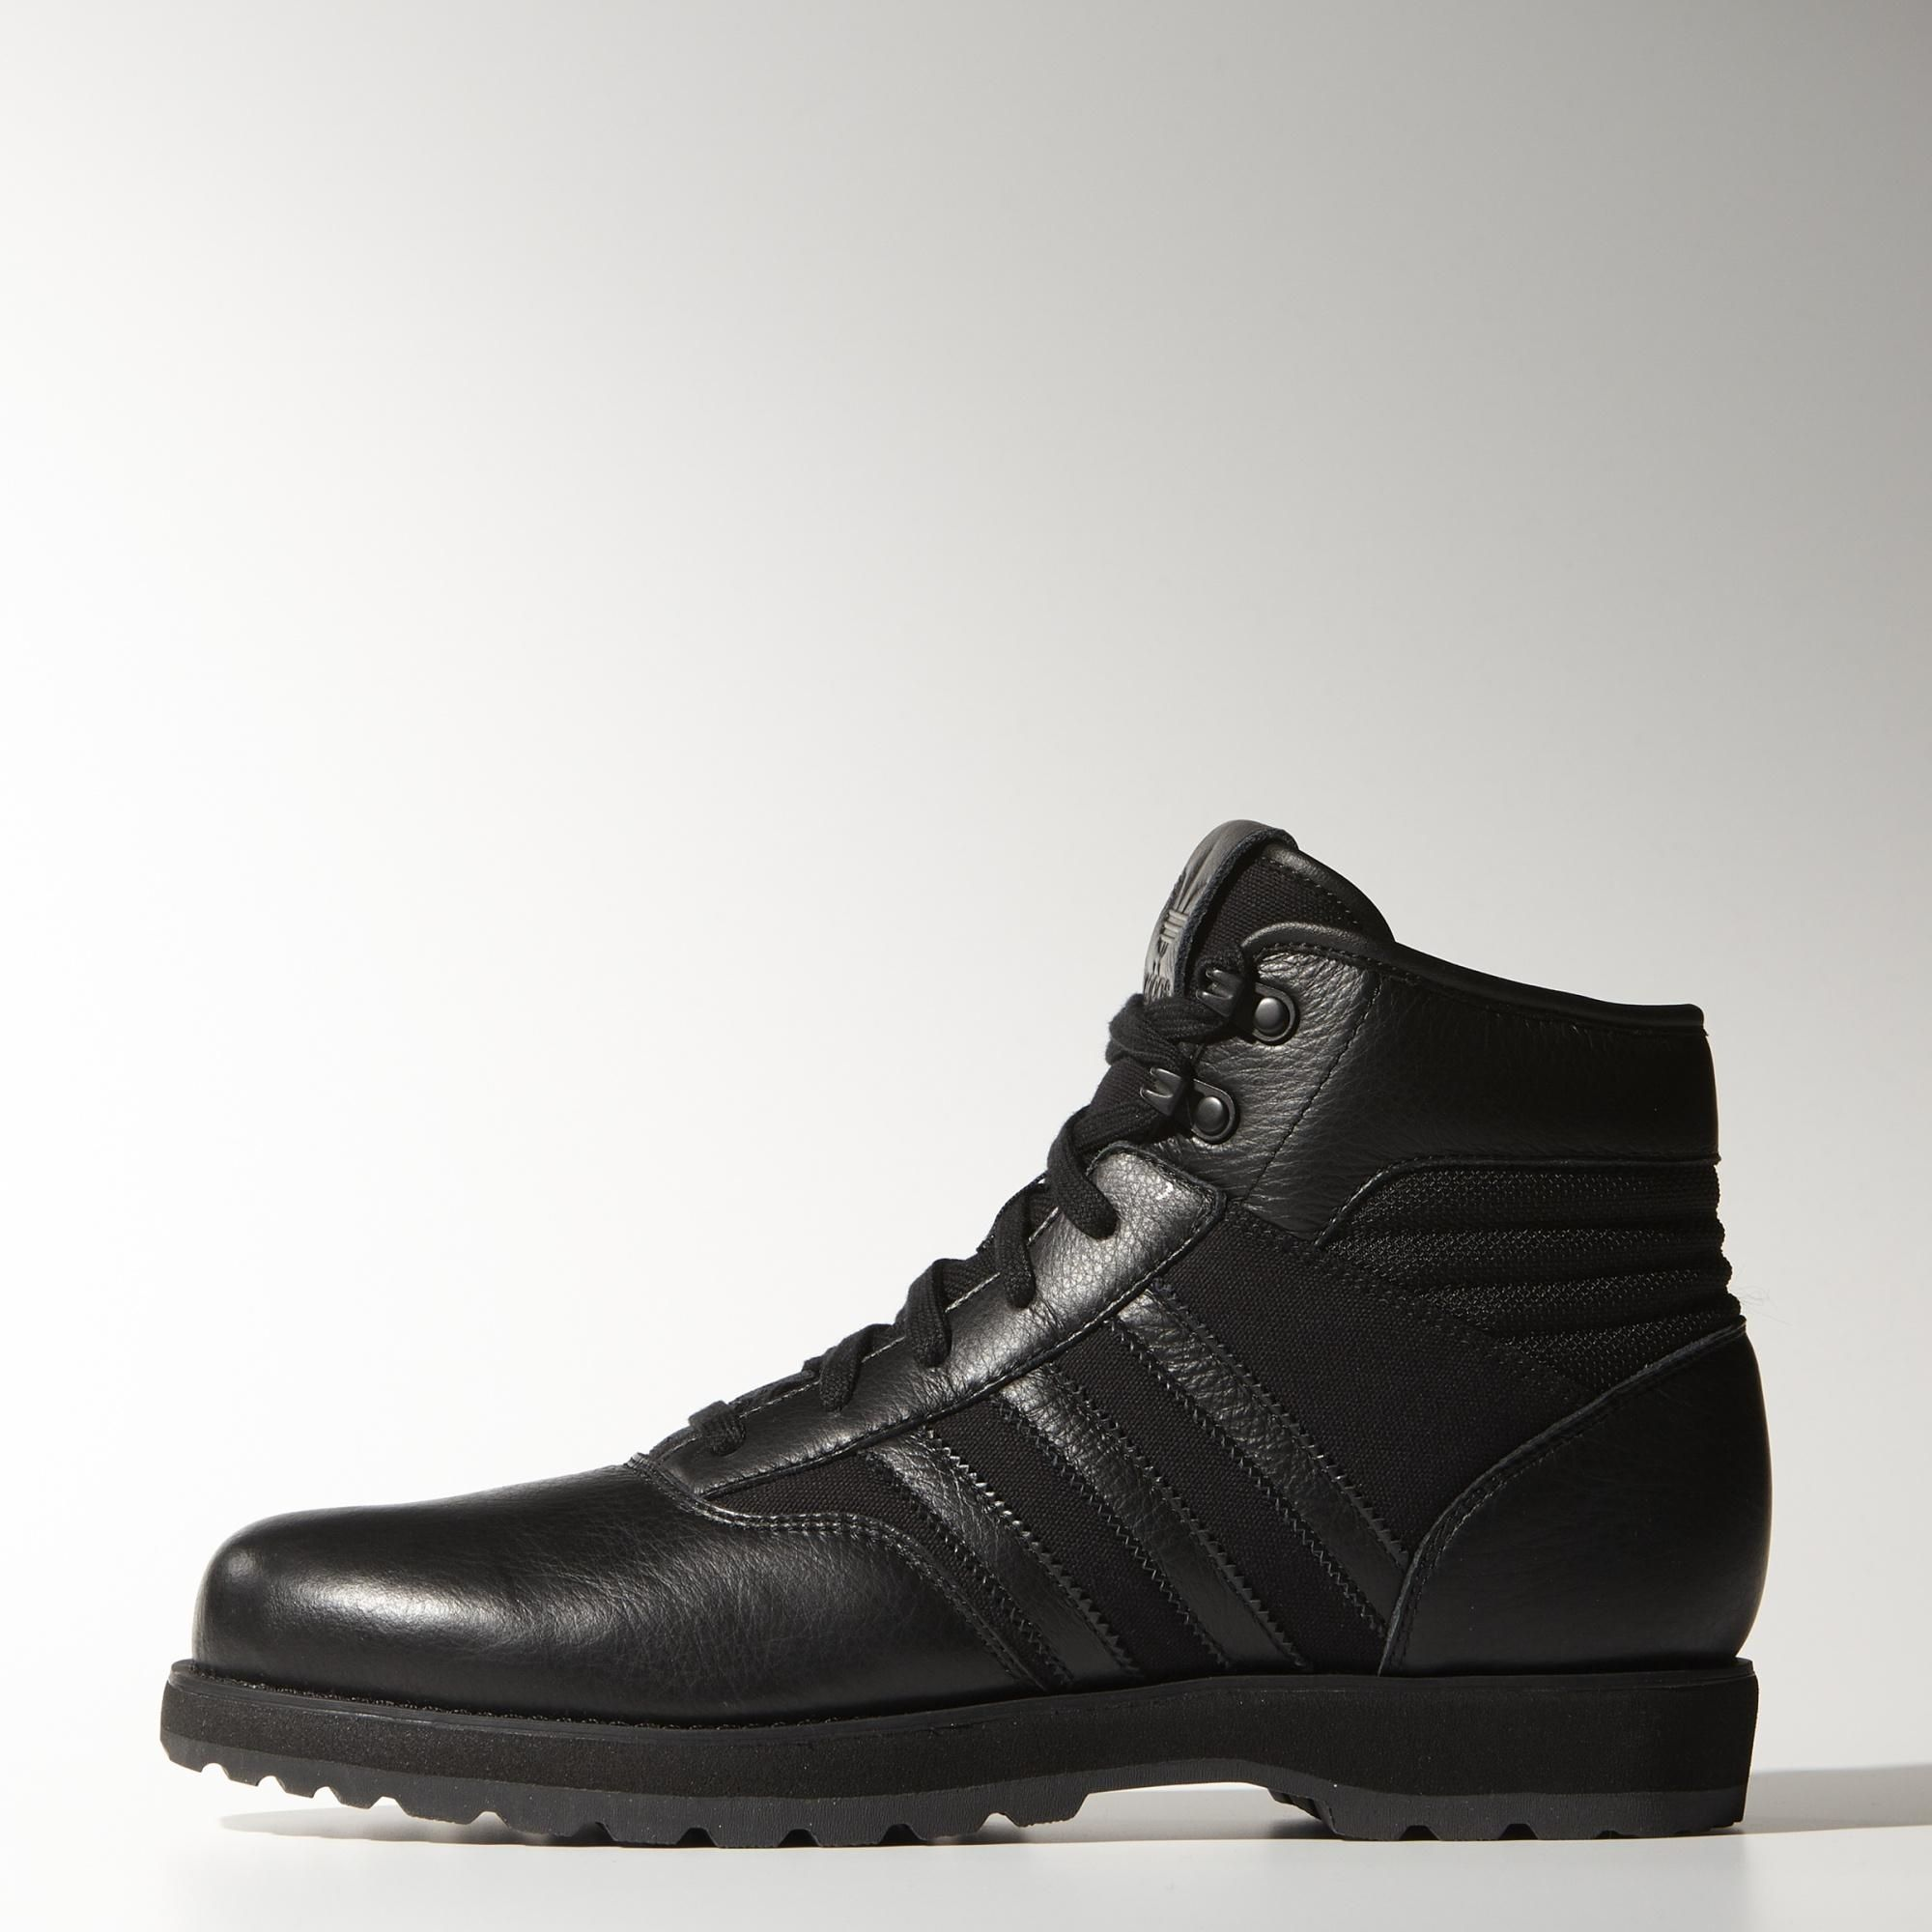 Winter Men's A Have Boot In Made For CityThese Stylish Boots The OwPZukXiT